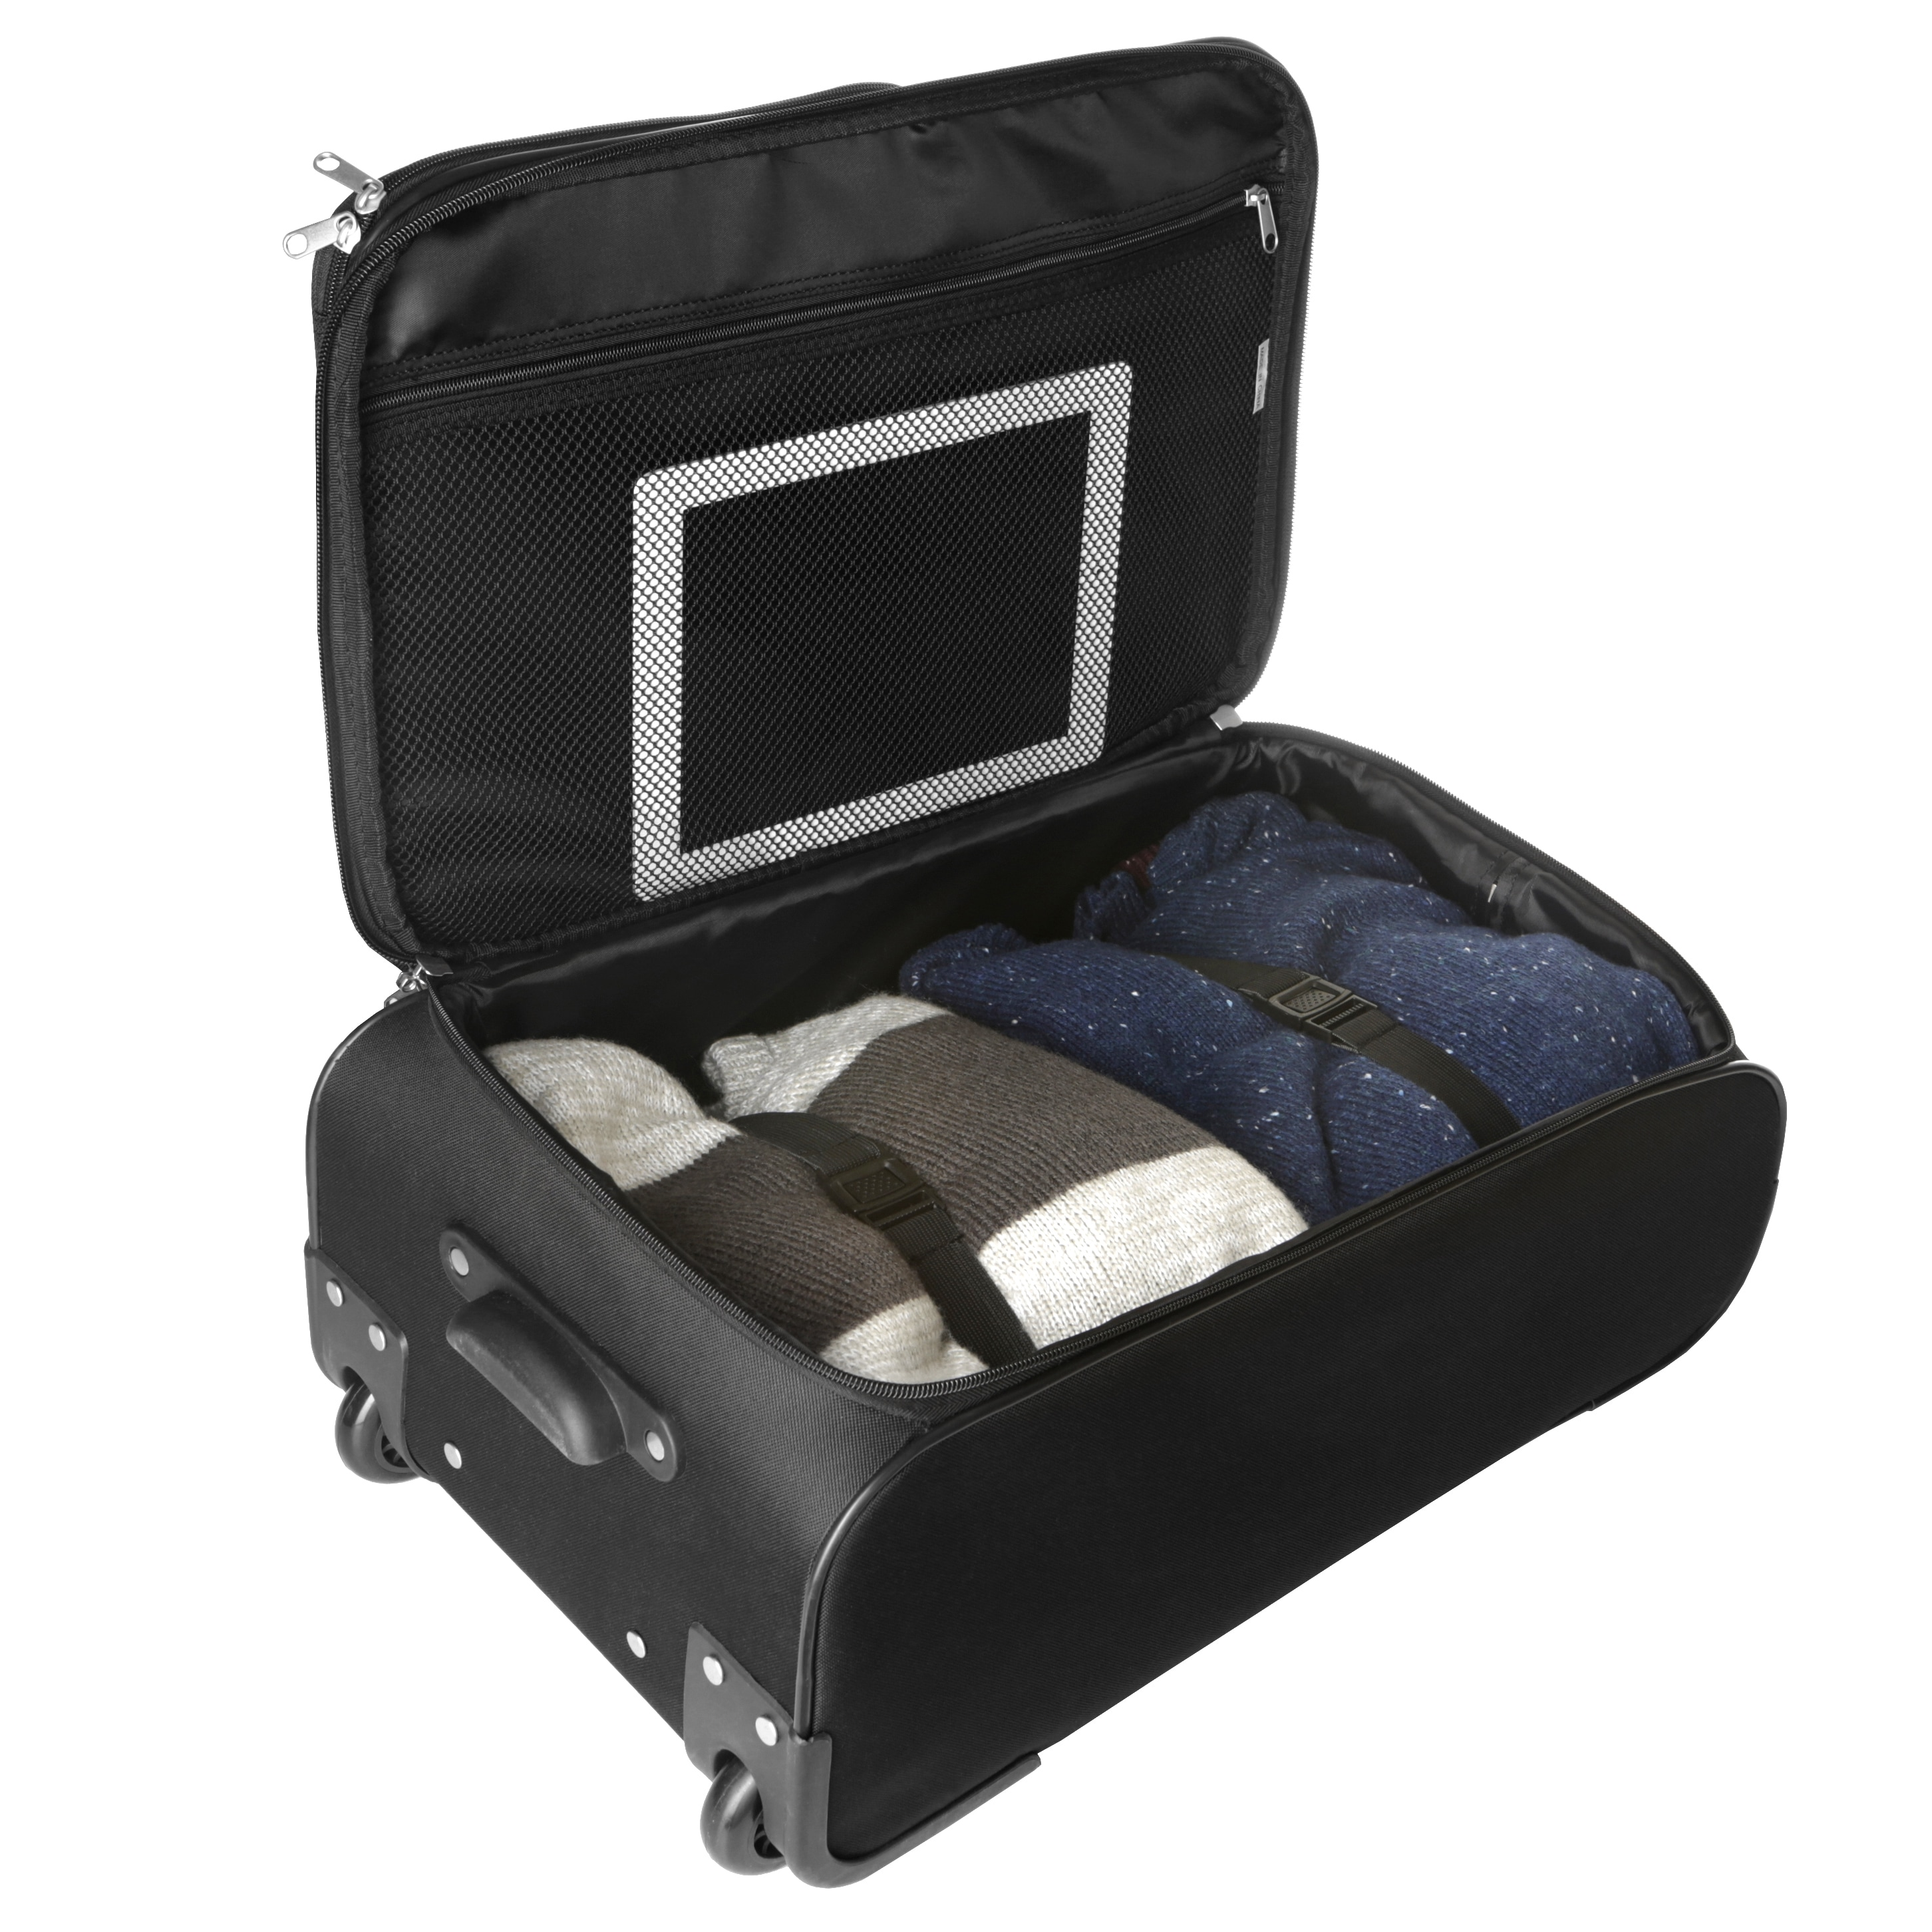 802a2e427ce4 Shop Denco Sports Steadfast 18-inch Chicago Cubs Black Rolling Carry-on  Upright Suitcase - Free Shipping Today - - 14418655